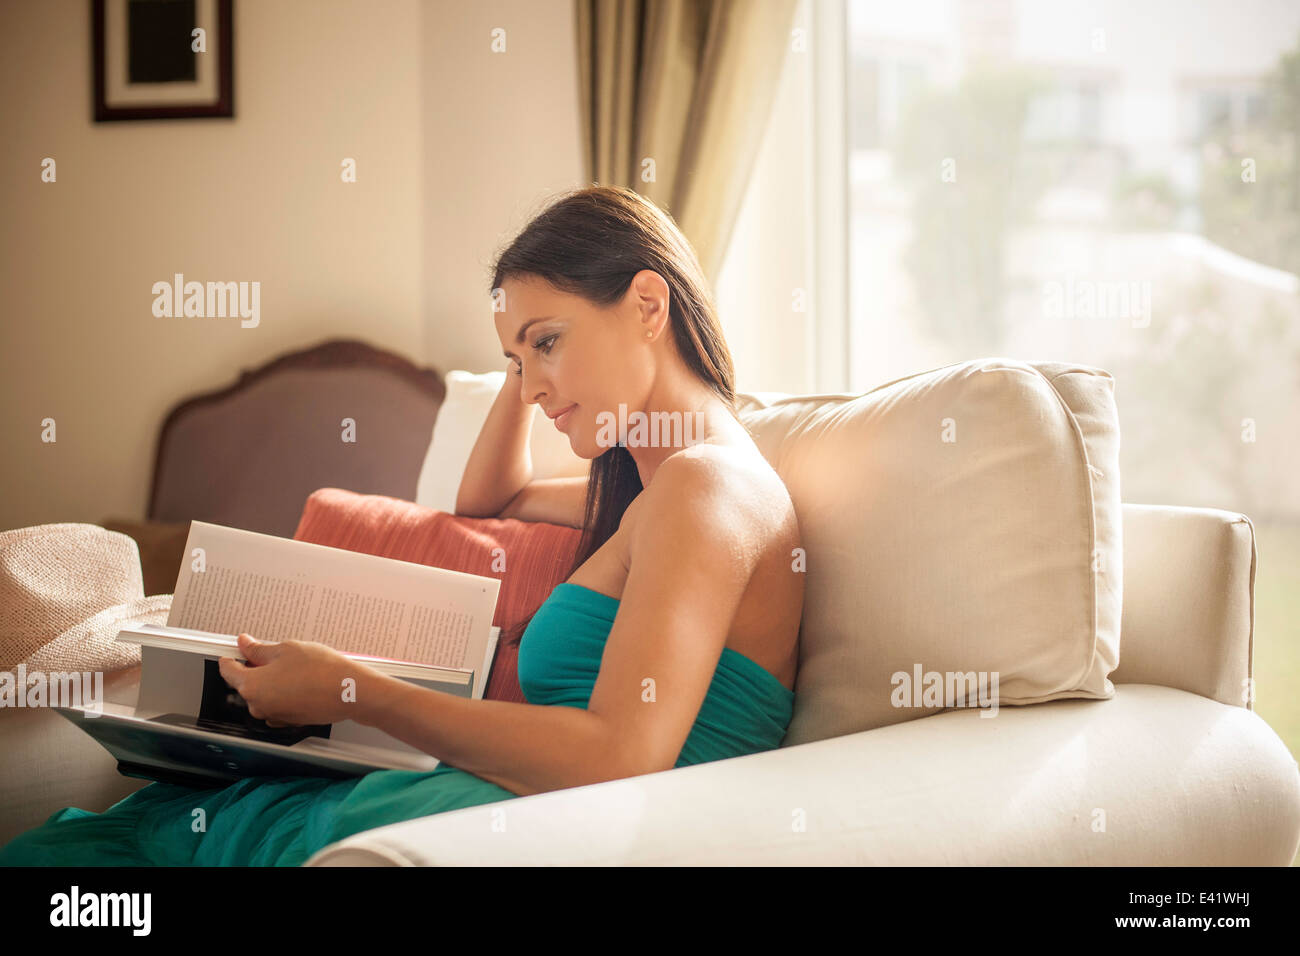 Young woman sitting in armchair reading book - Stock Image